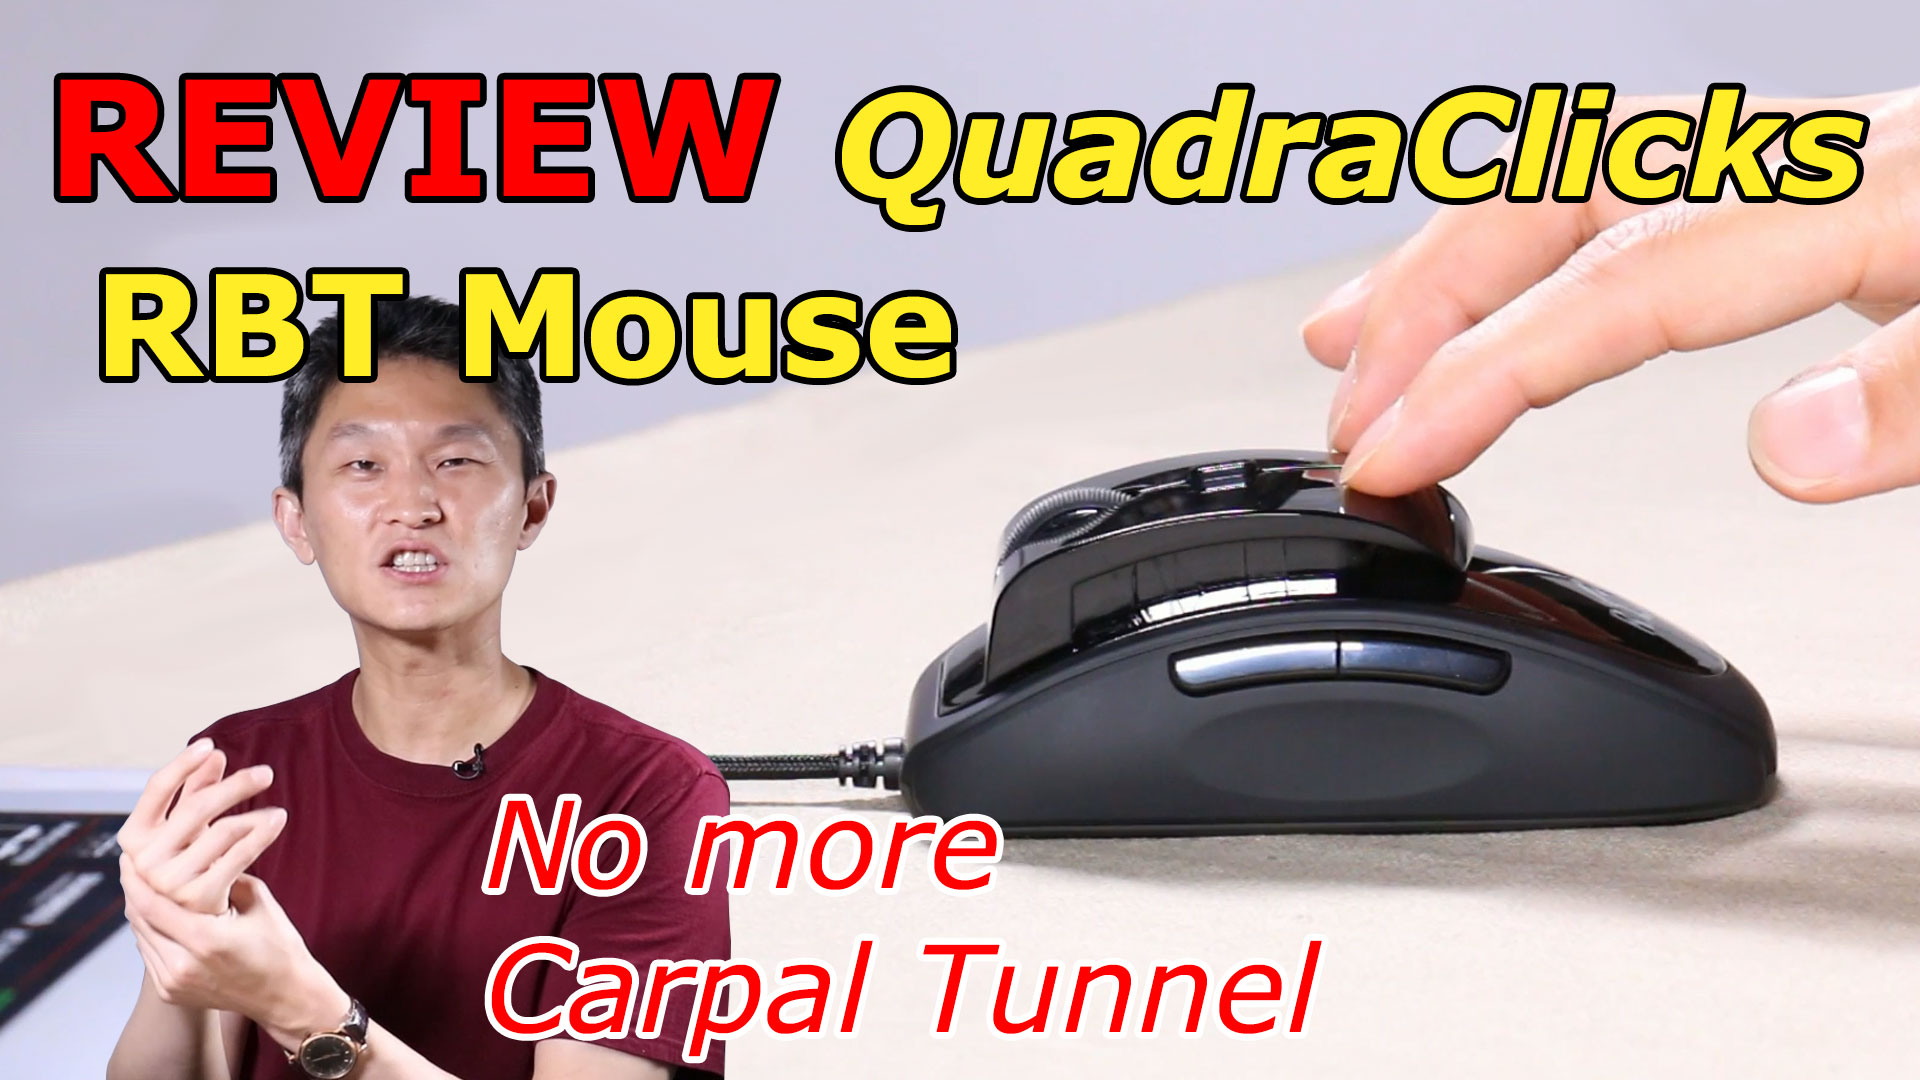 RBT Mouse stops Carpal Tunnel Syndrome!